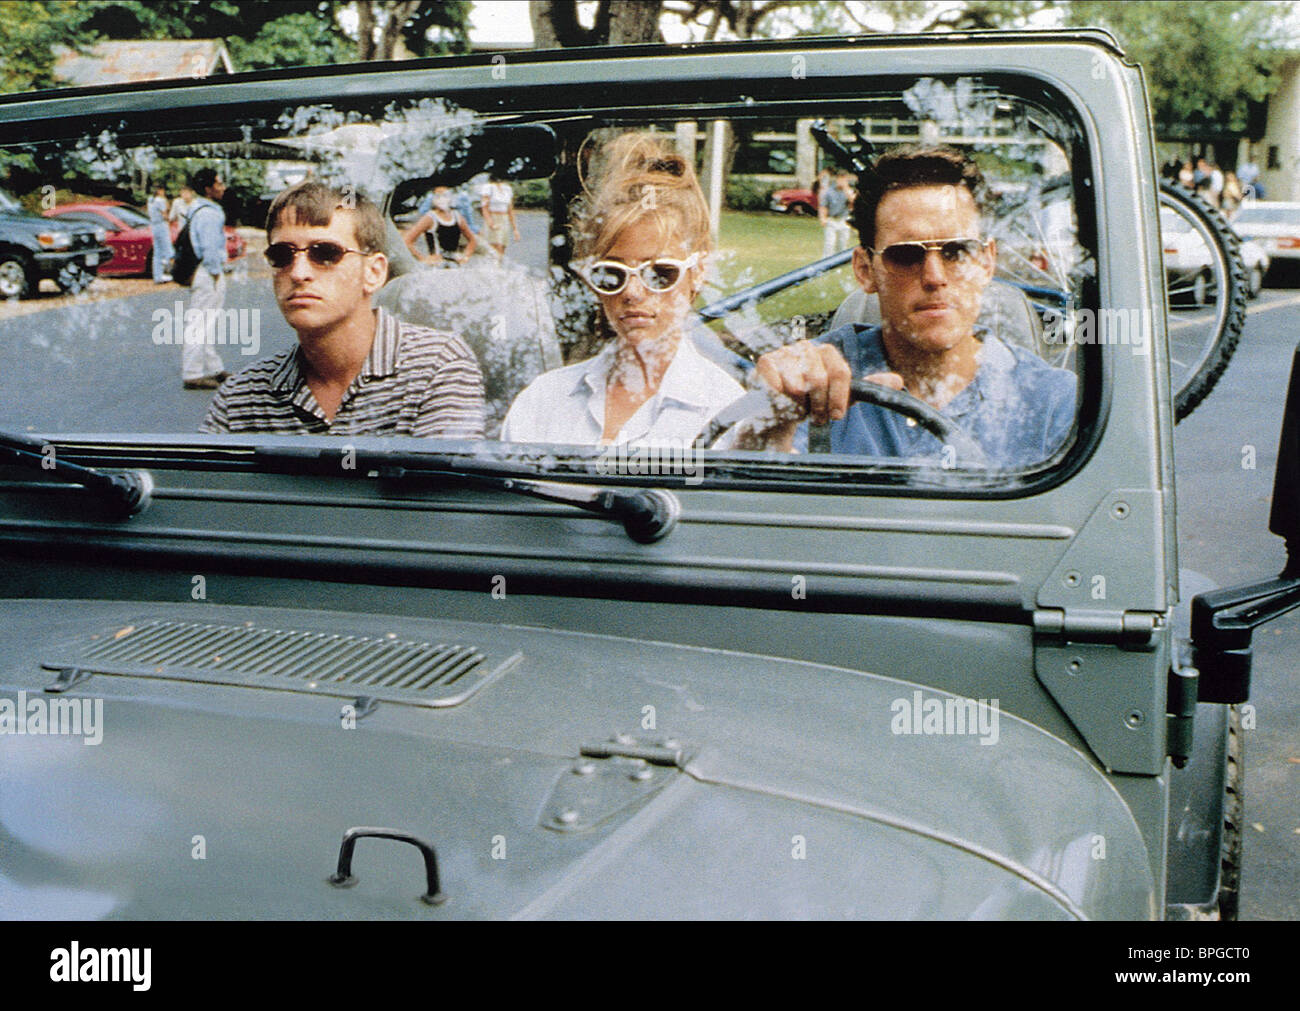 CORY PENDERGAST DENISE RICHARDS & MATT DILLON WILD THINGS (1998) - Stock Image